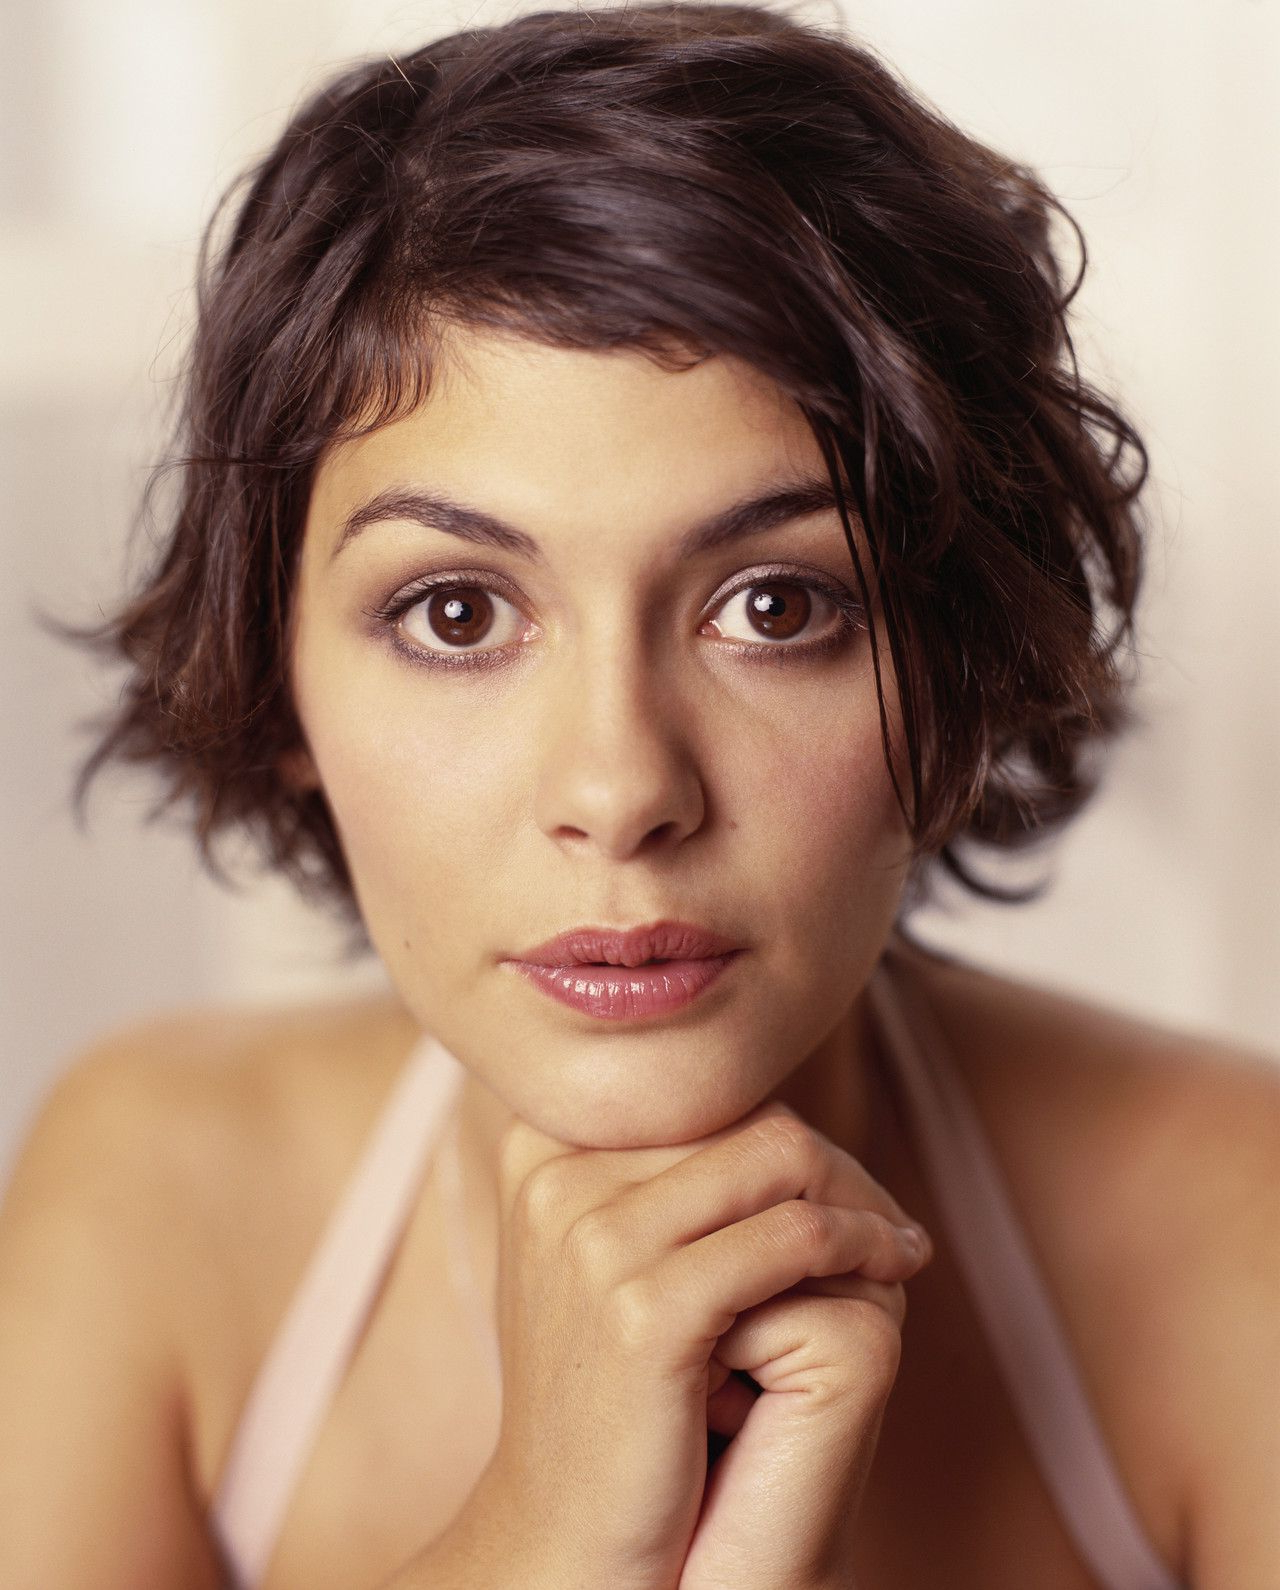 10 Classic Hairstyles Tutorials That Are Always In Style | Womens Pertaining To Audrey Tautou Short Haircuts (View 12 of 25)